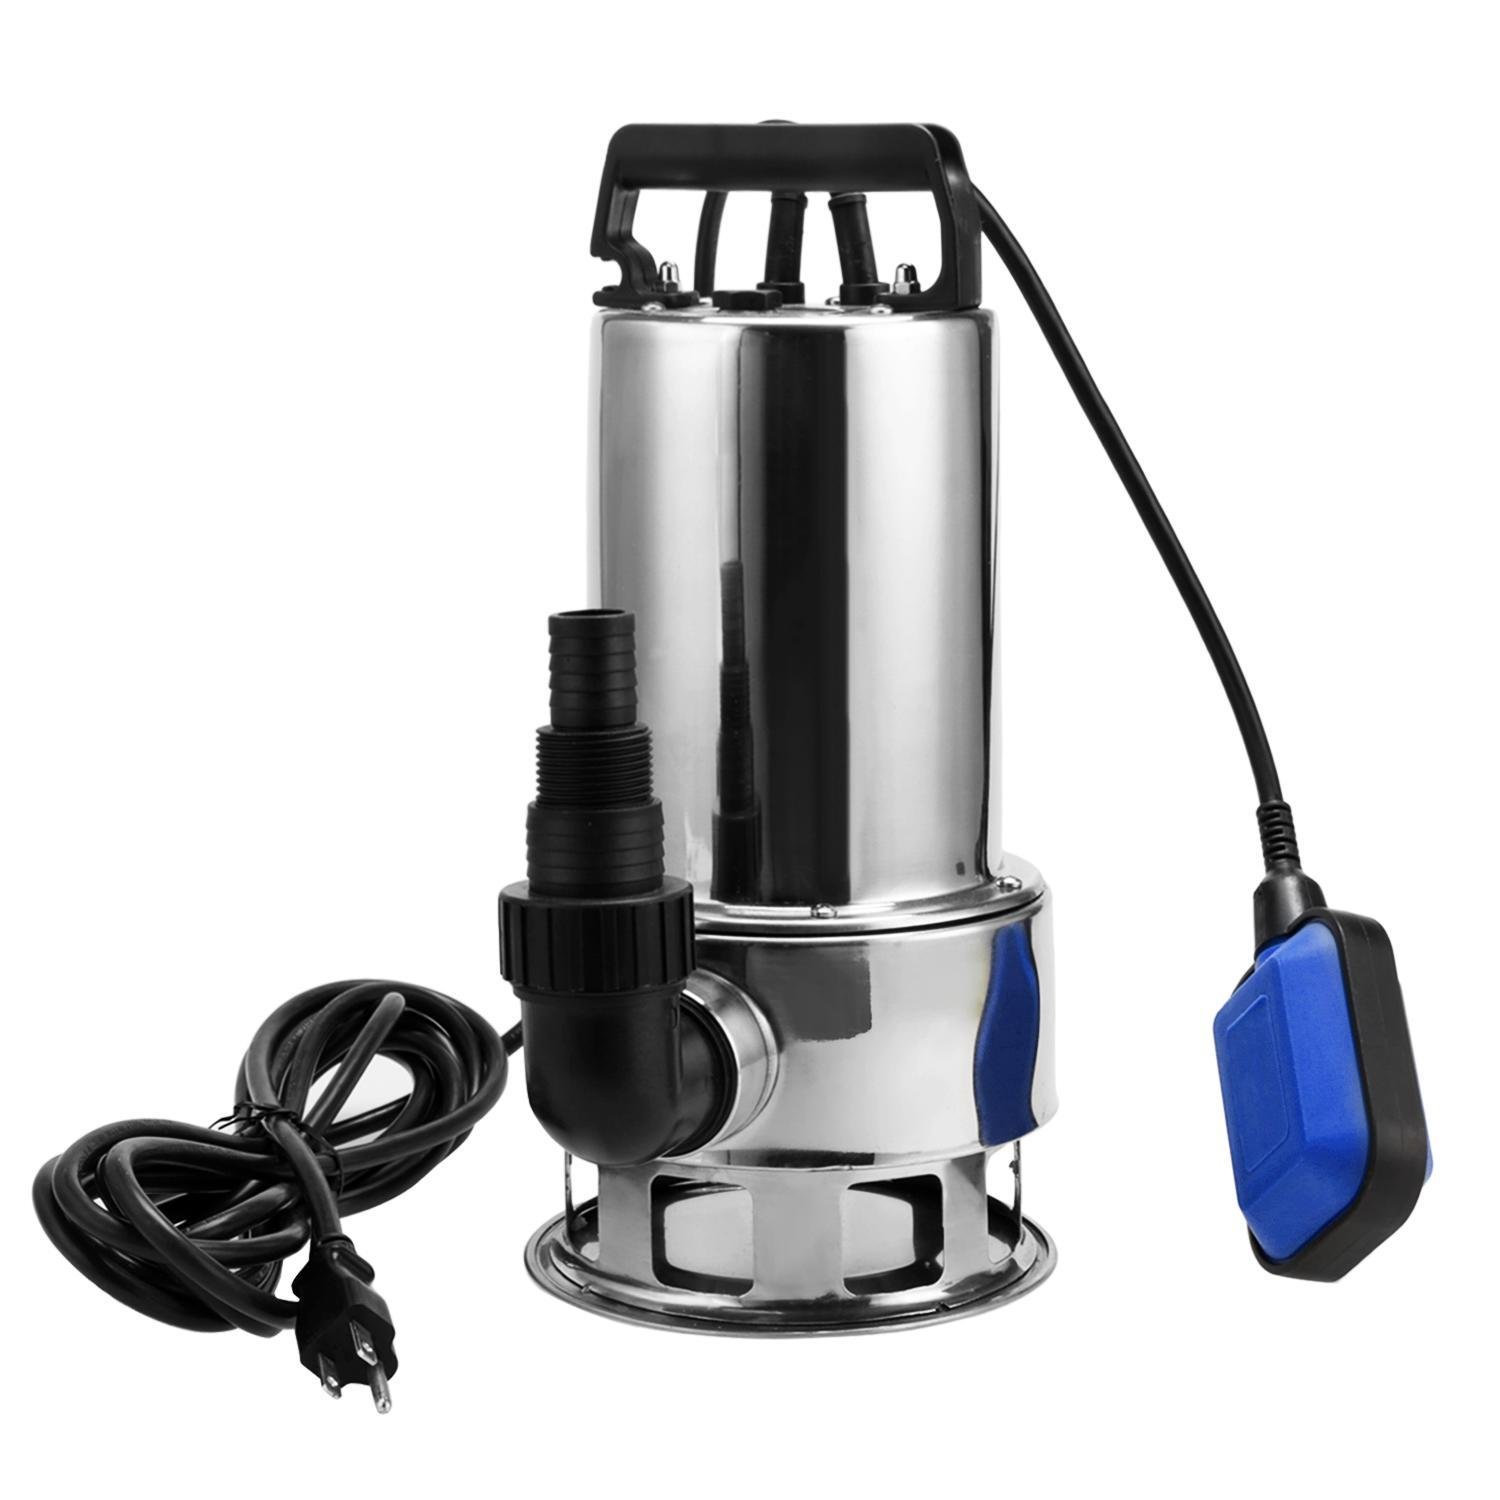 Meflying Garden Stainless Steel Water Pump 1.5HP Submersible Pump 1000W Clean Dirty Water Pump with 15ft Cable US STOCK